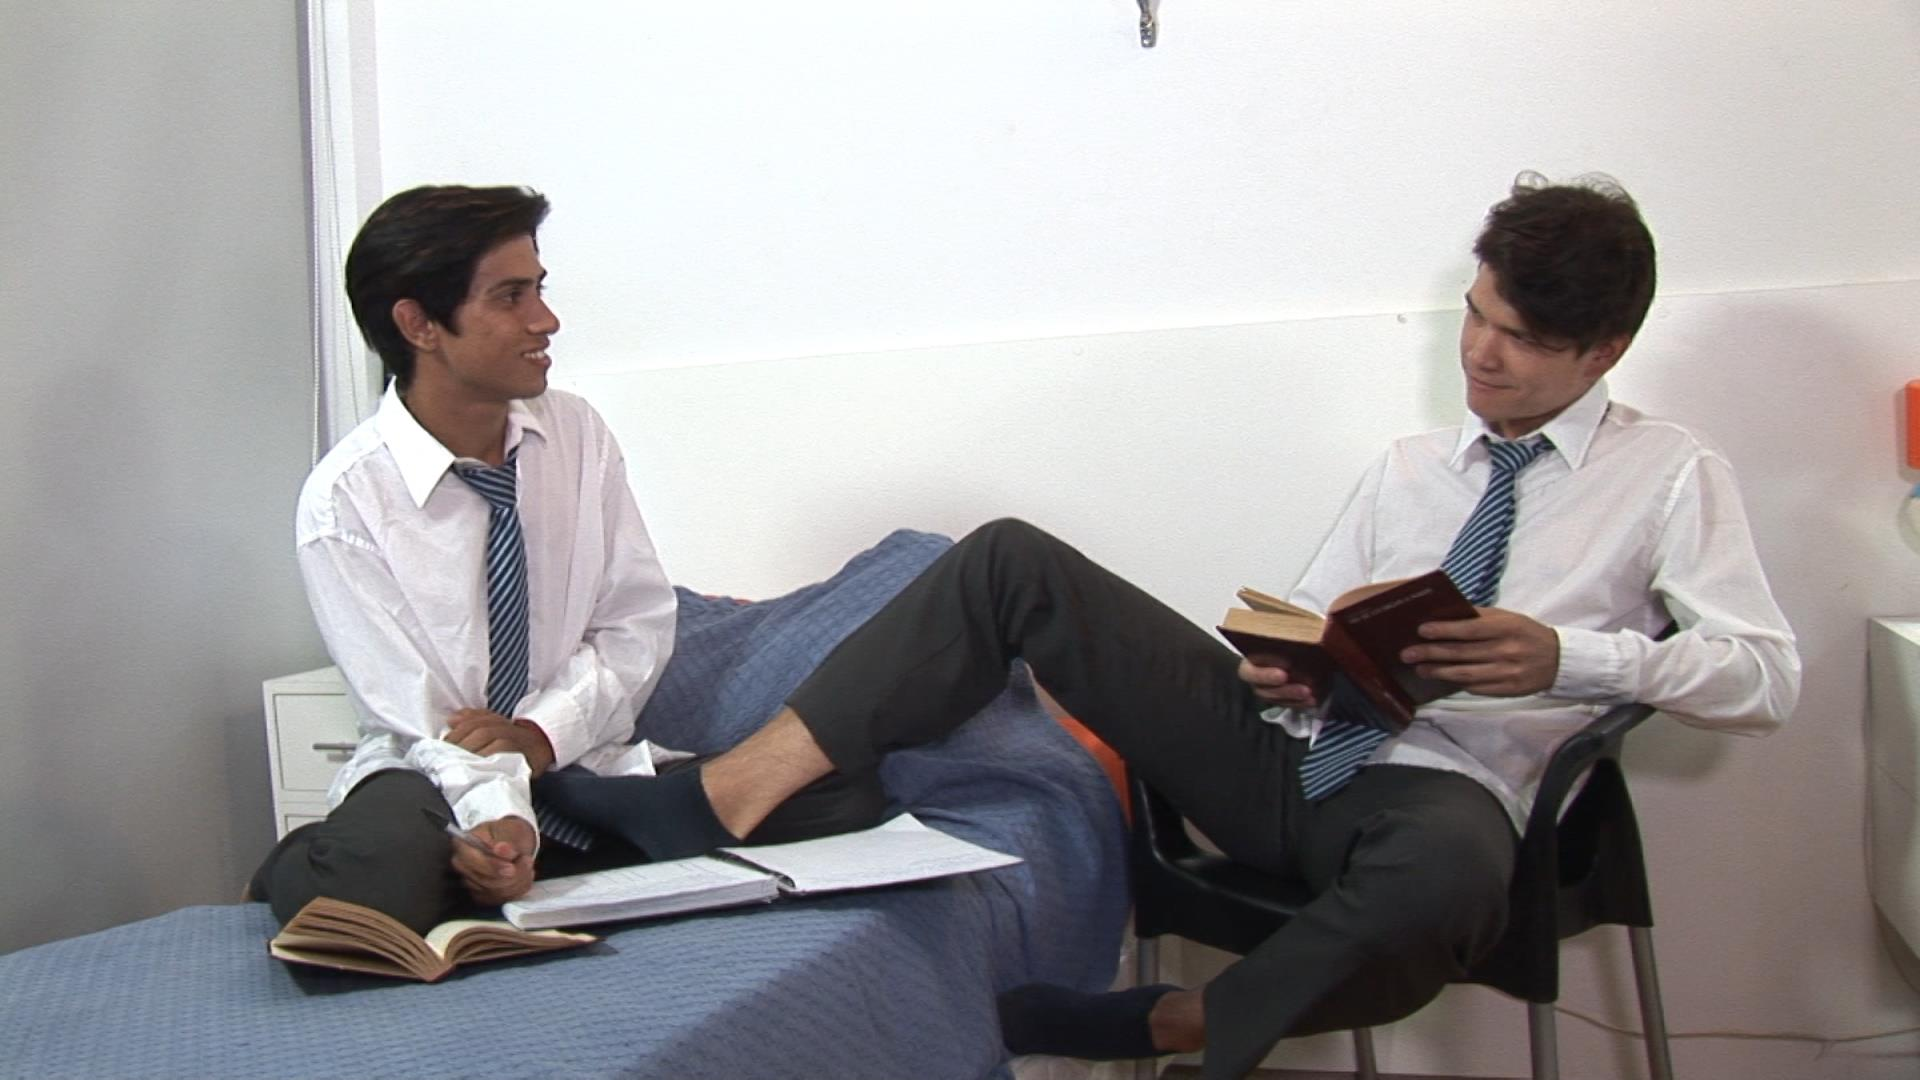 Bareback-Me-Daddy-Gay-Priest-Fucking-College-Students-01 Latin School Twinks Get Fucked By Their Older Catholic Priest